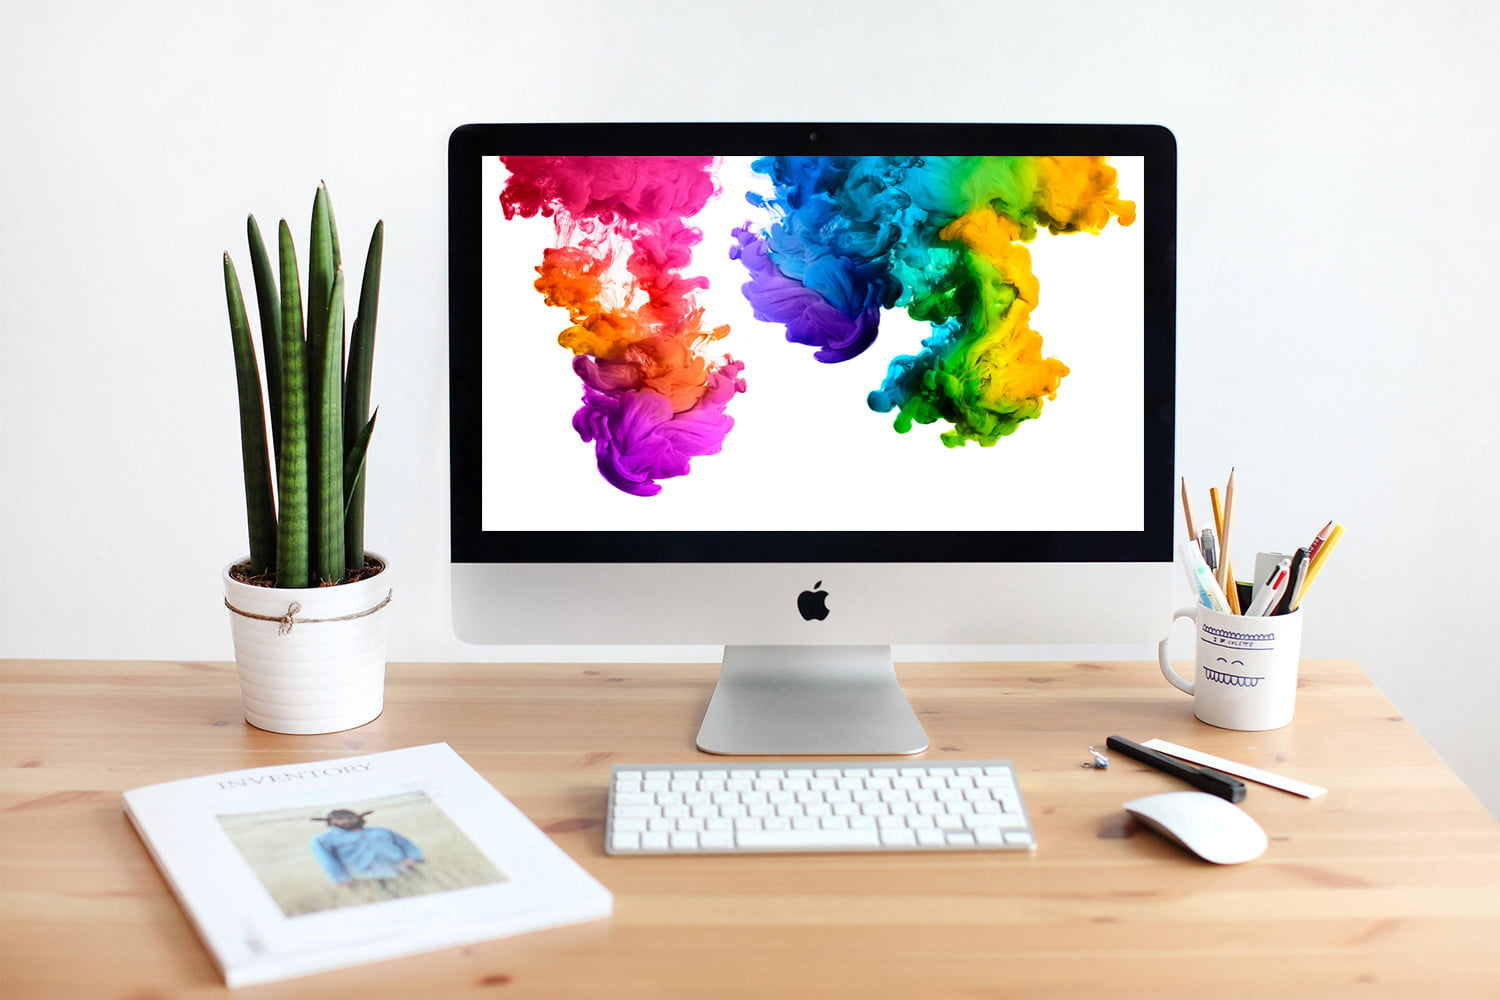 Paint for Mac: How To Find the Free, Hidden Paint App